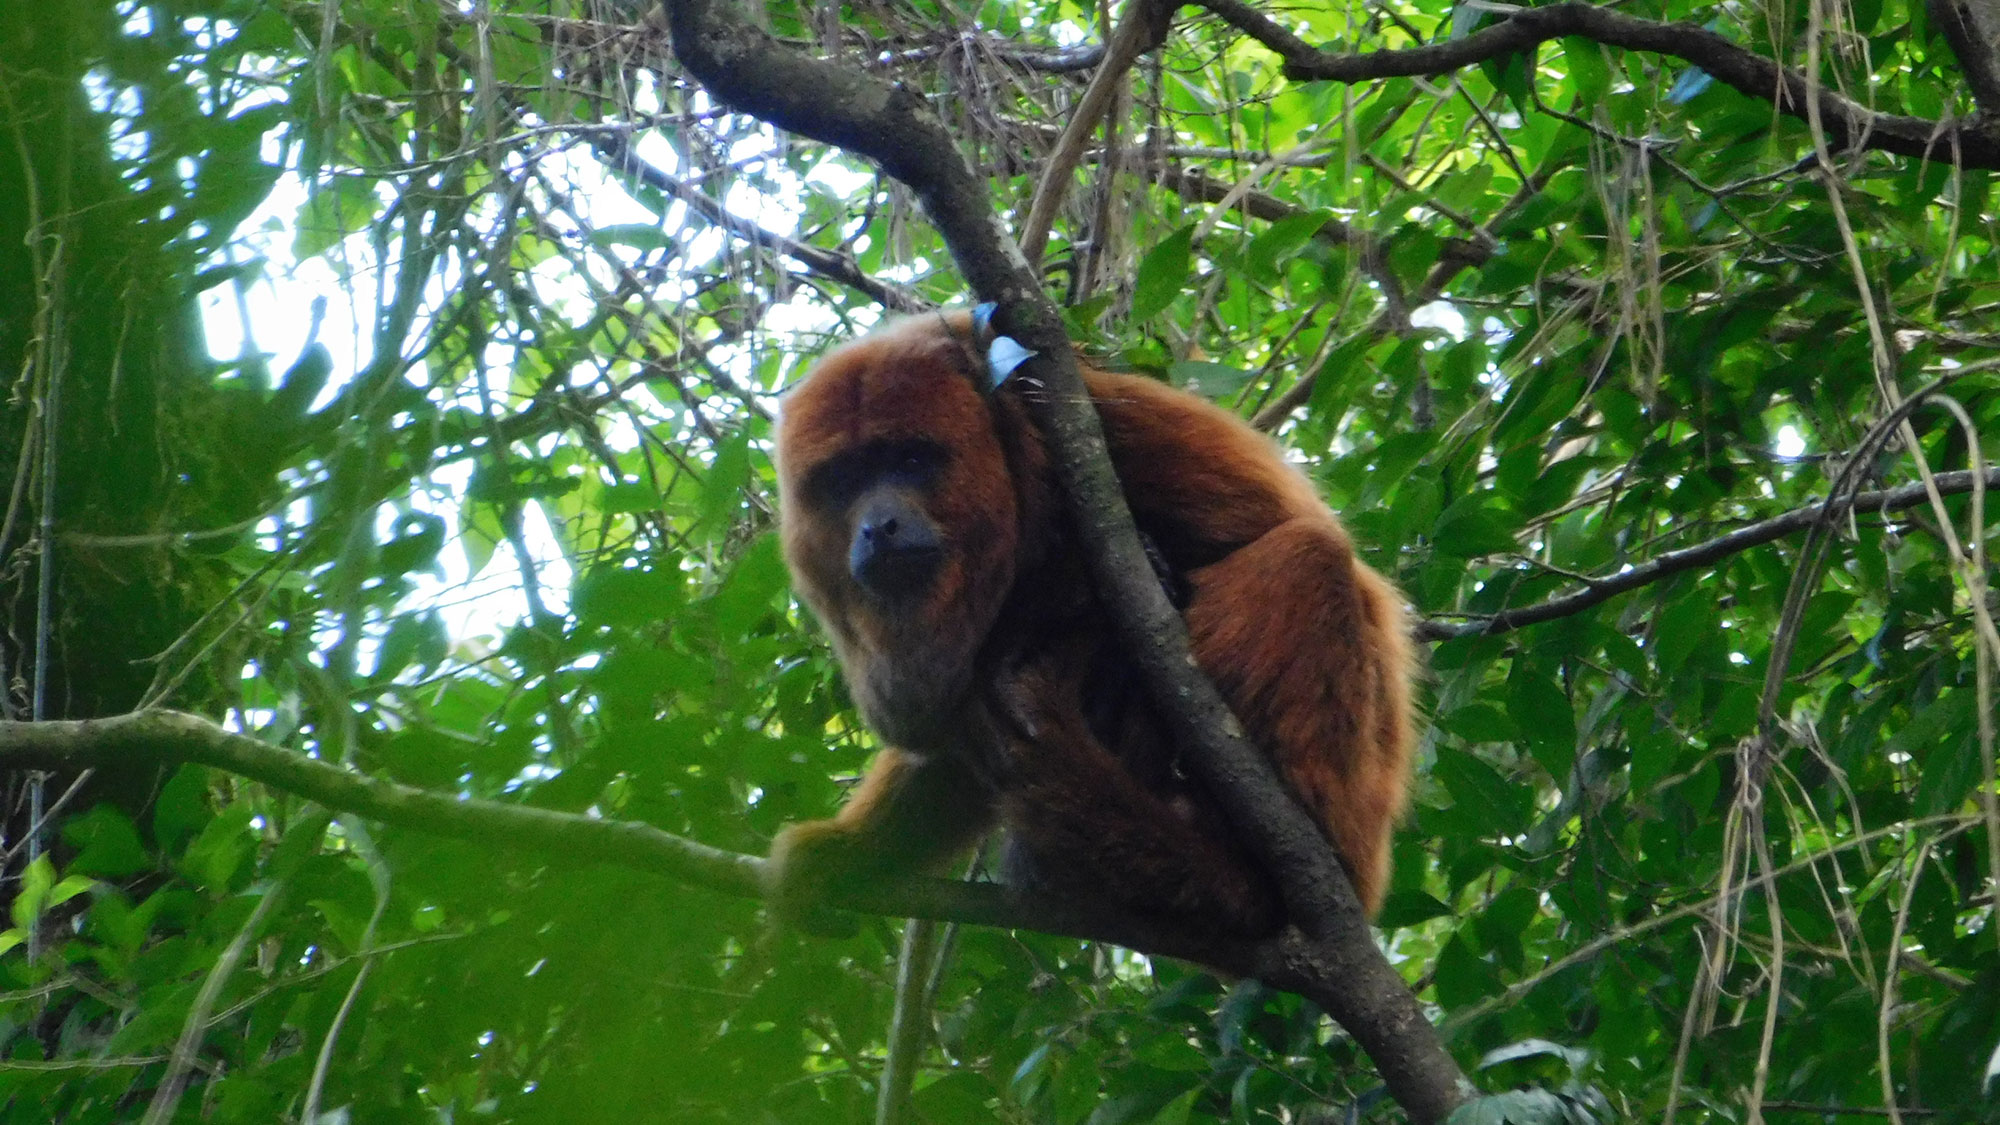 A male brown howler monkey is sitting on a branch of a tree, surrounded by green leaves, staring straight into the camera. The howler monkey has reddish brown fur and a black face.